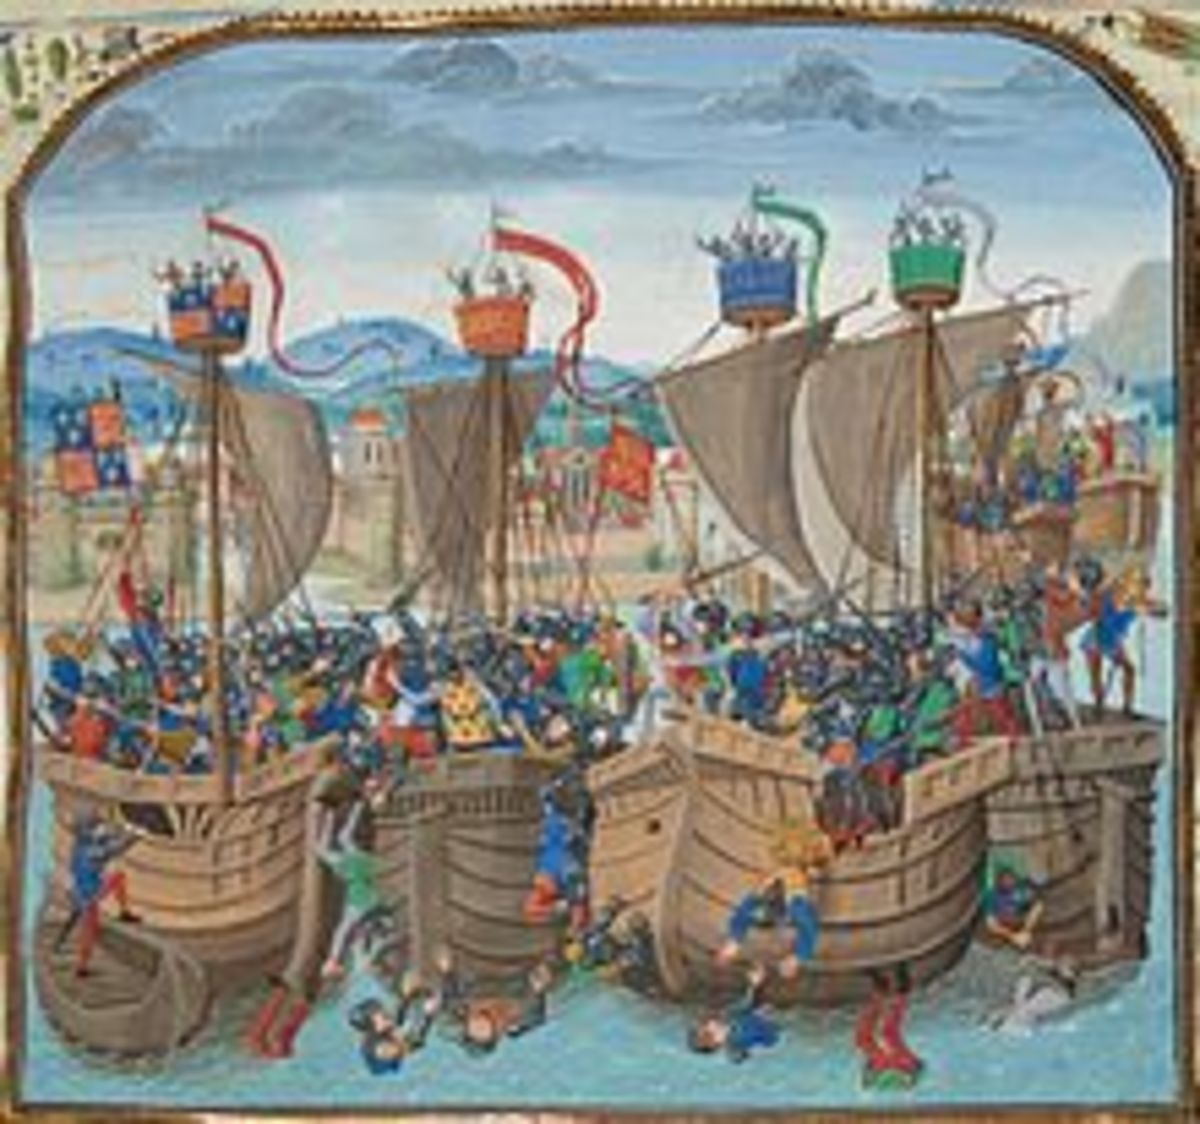 The Battle of Sluys as shown in Jean Froisssart's Chornicles